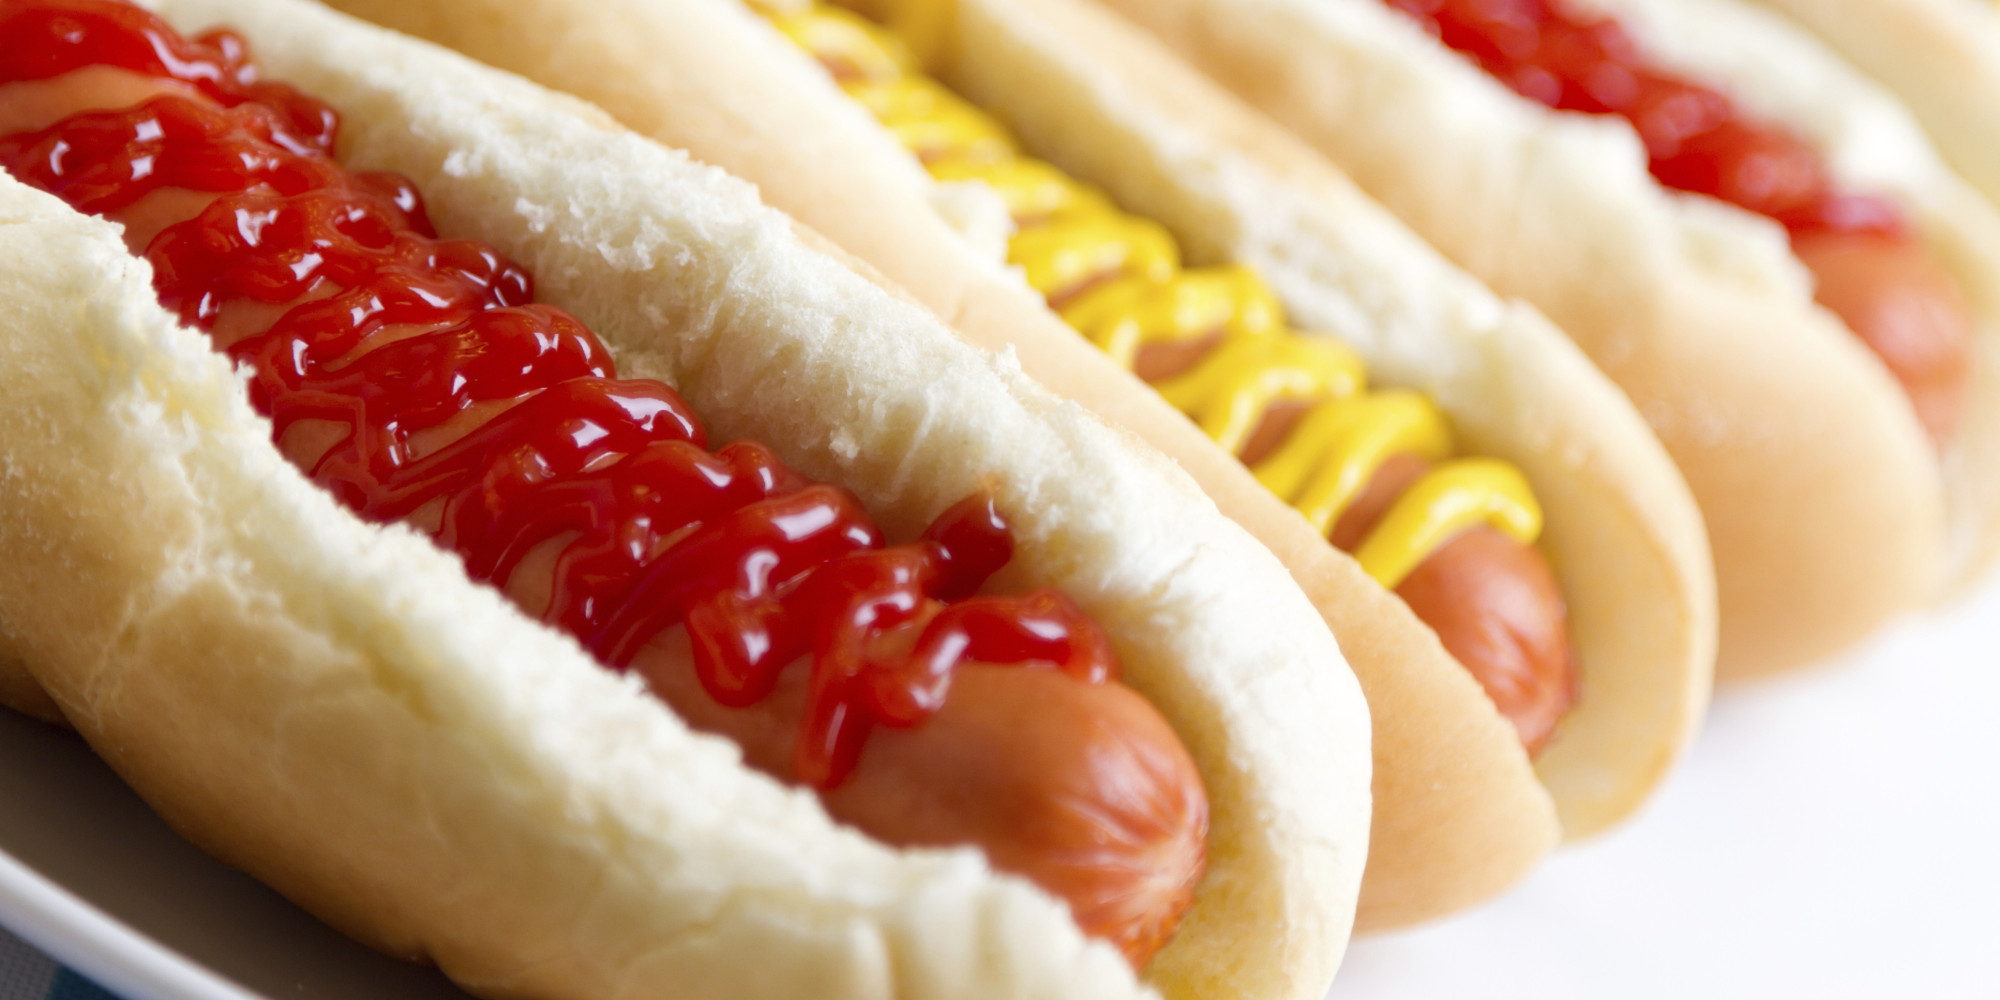 Hot Dog Ingredients n 5462143 also Stock Image Antique Mint Condition Red Car Image23692861 besides Muscle Car Humor Auto  edy Picture 63 Strange Custom Vehicle Oscar Mayer Mobile together with Tilda Swinton Sleeps Box Moma Photo further 3123308. on oscar mayer bus